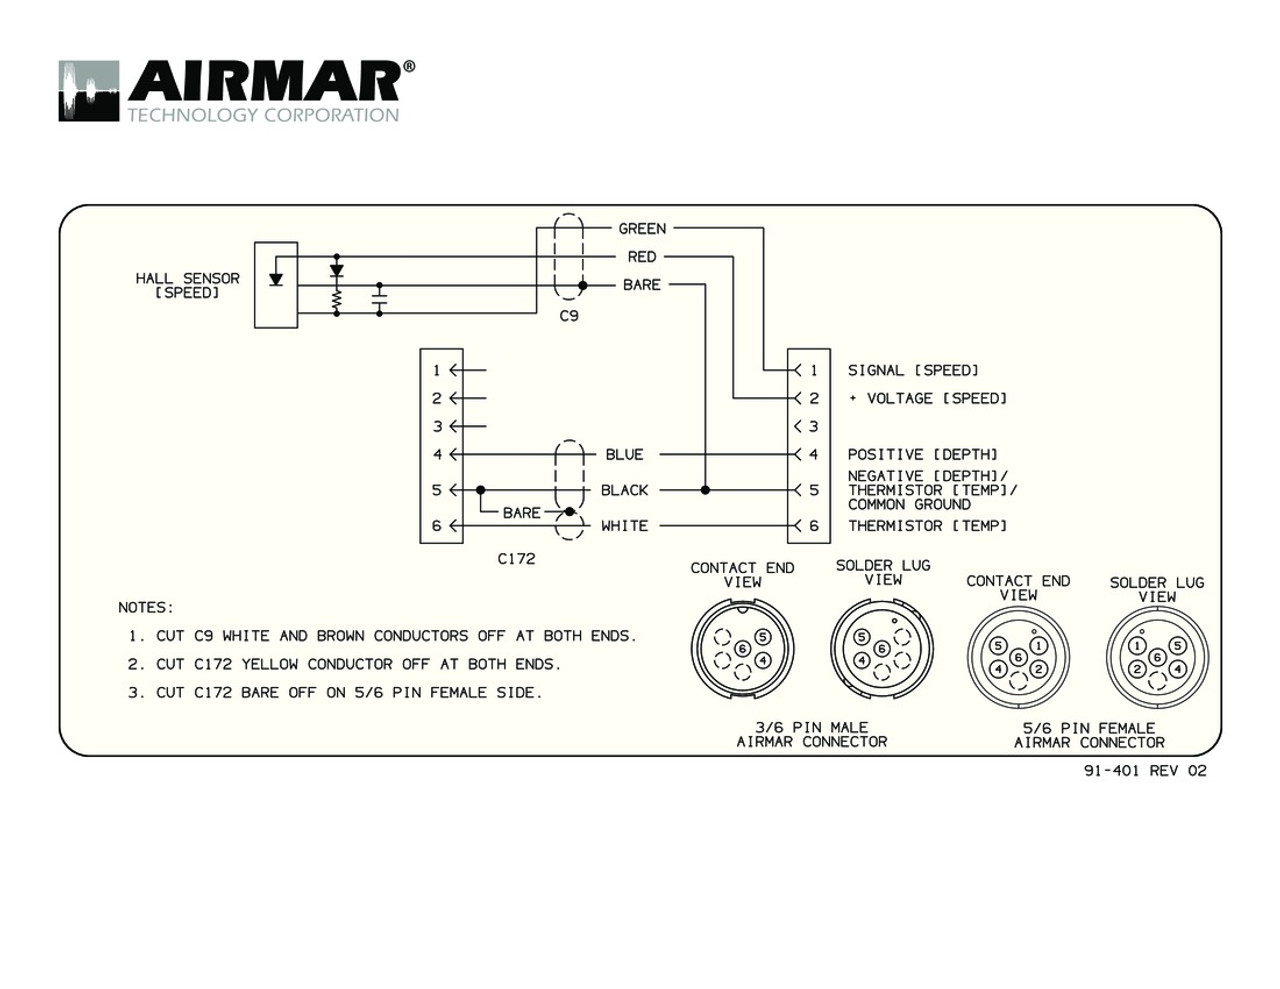 small resolution of airmar wiring diagram garmin 6 pin s blue bottle marinespeed sensor with y cable